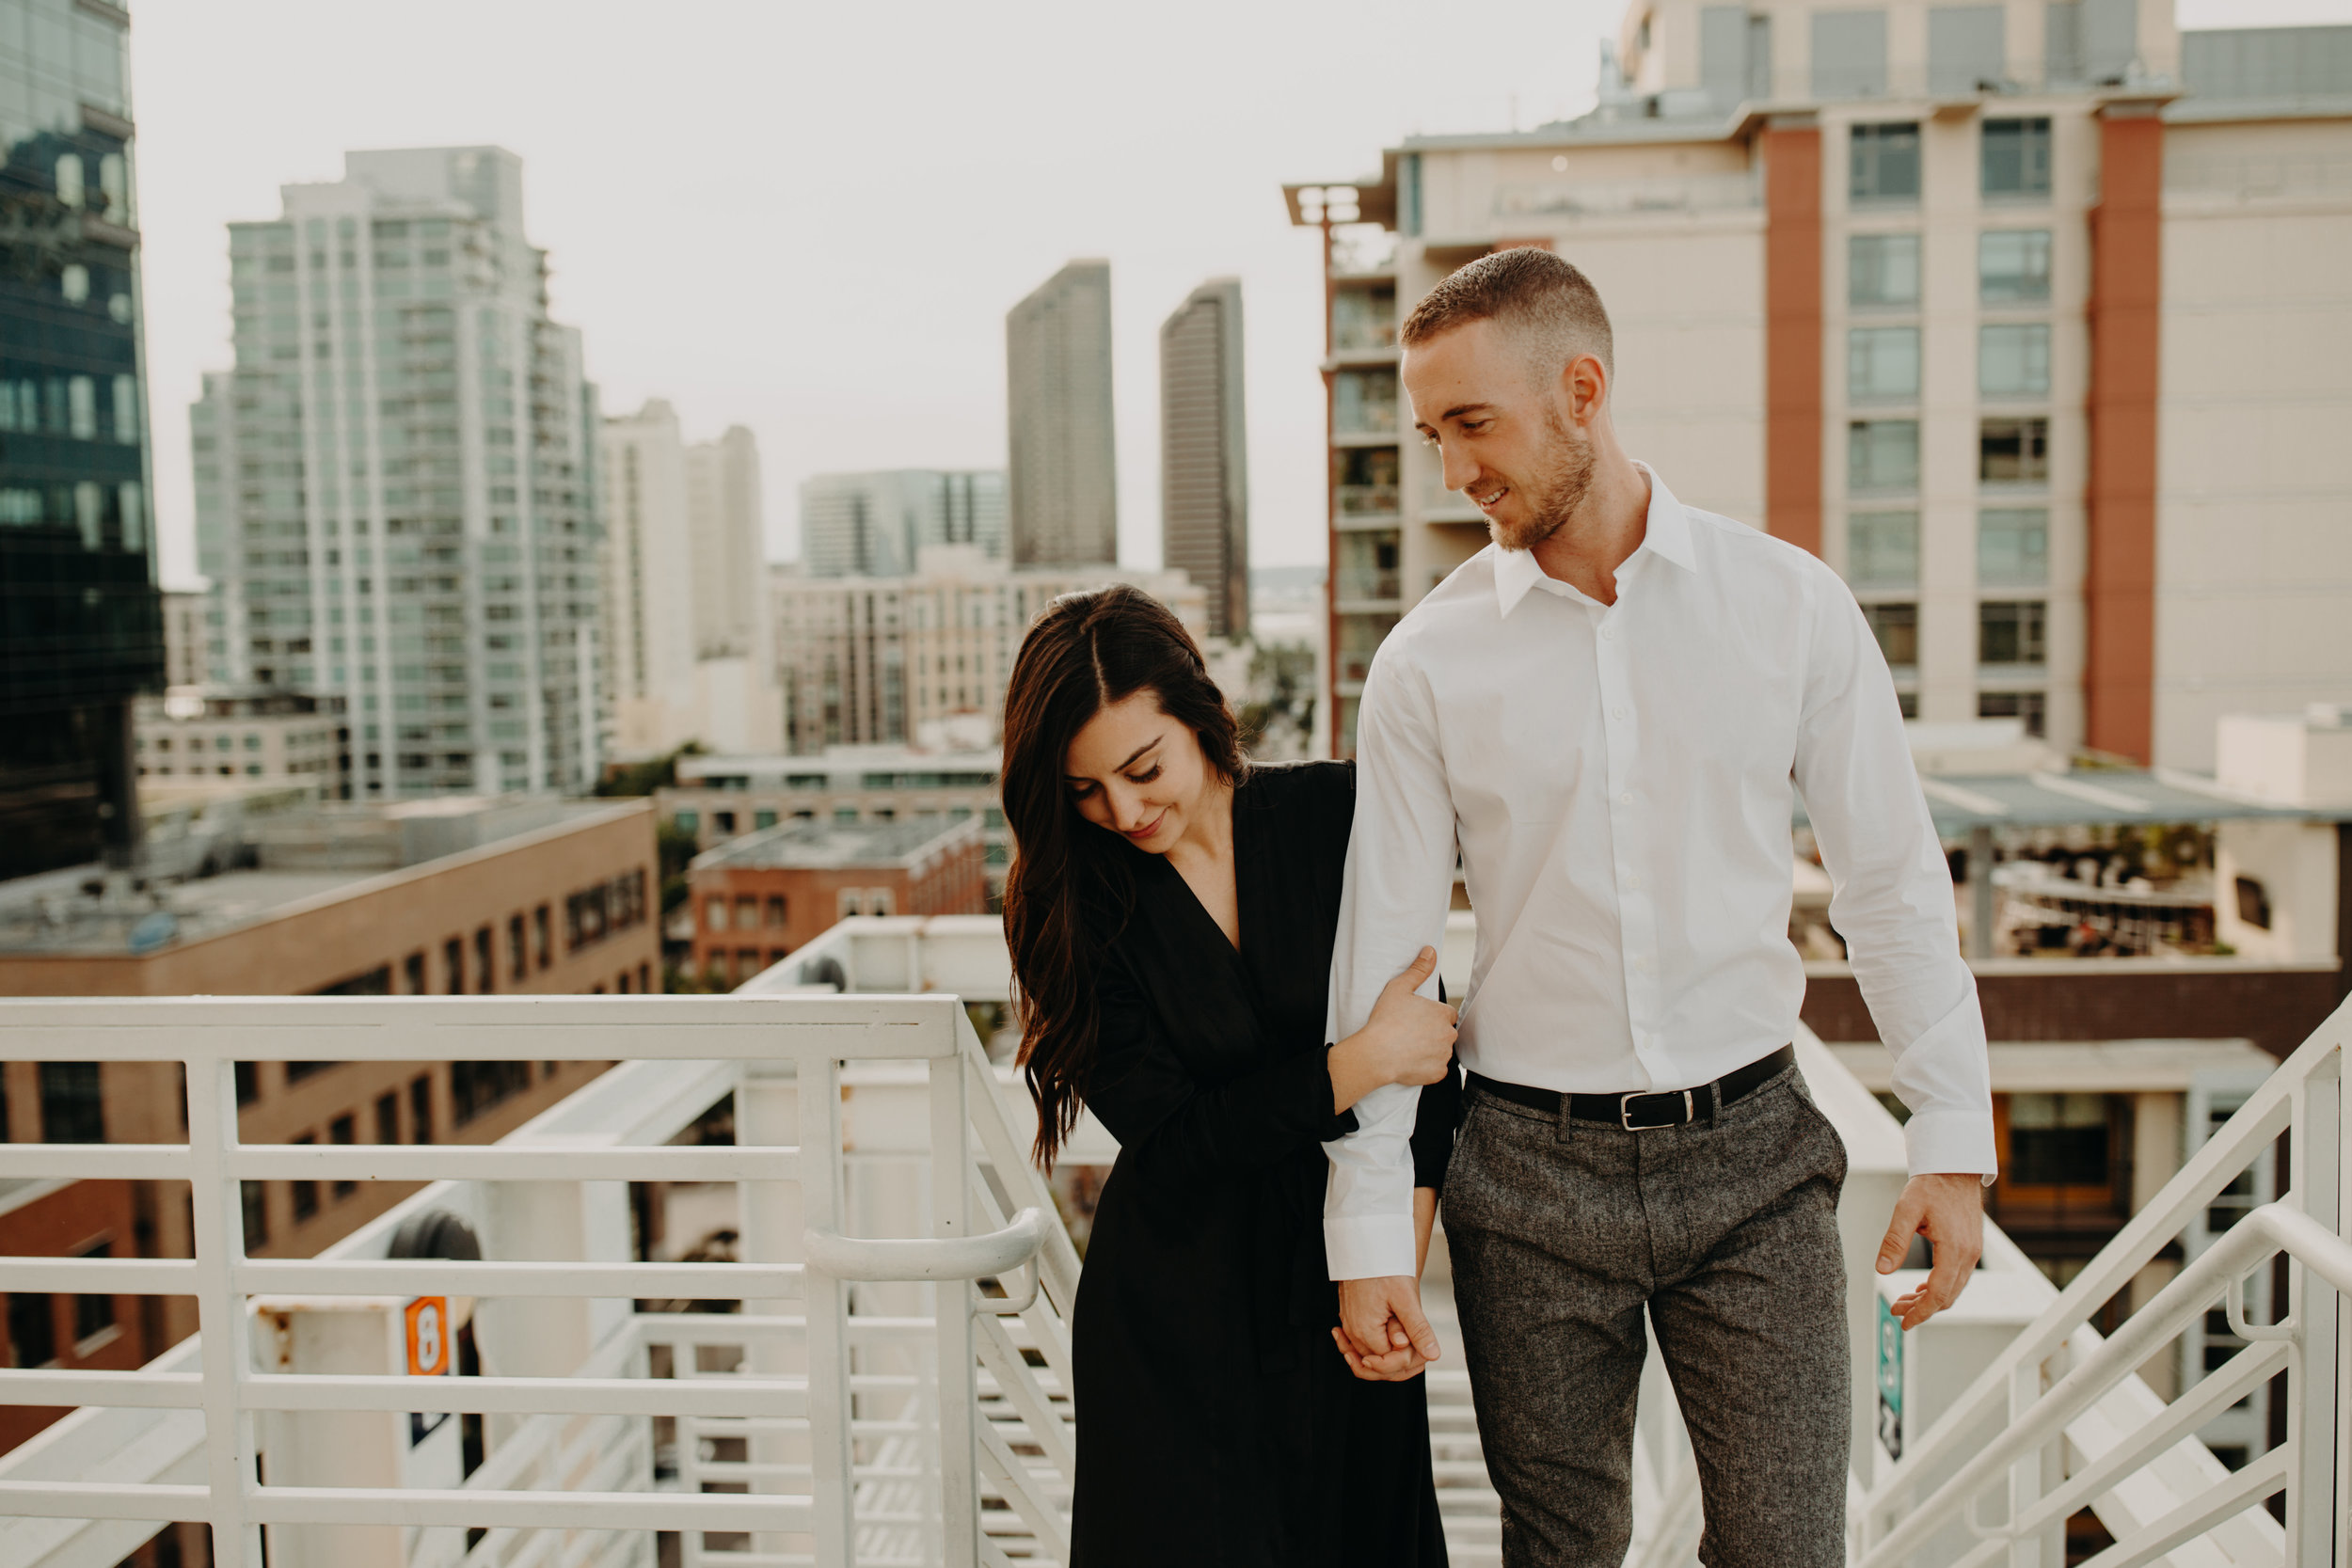 Rooftop San Diego Engagement Session Emilia & Christopher Emily Magers Photography-167.jpg